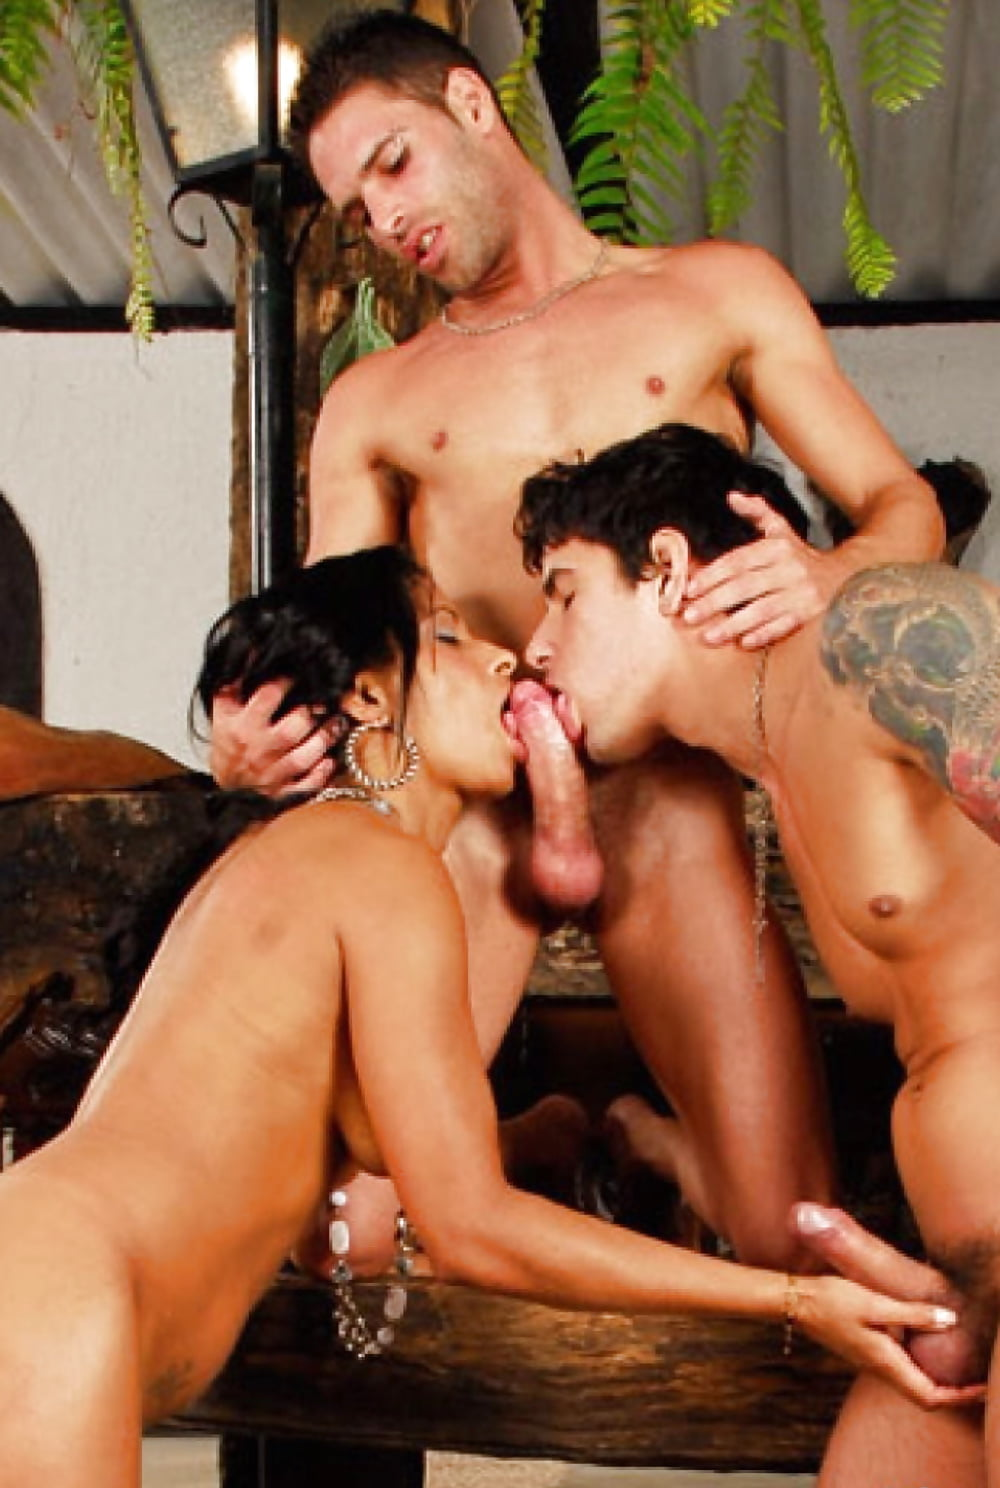 Thick black girl and three guys in bisexual photo